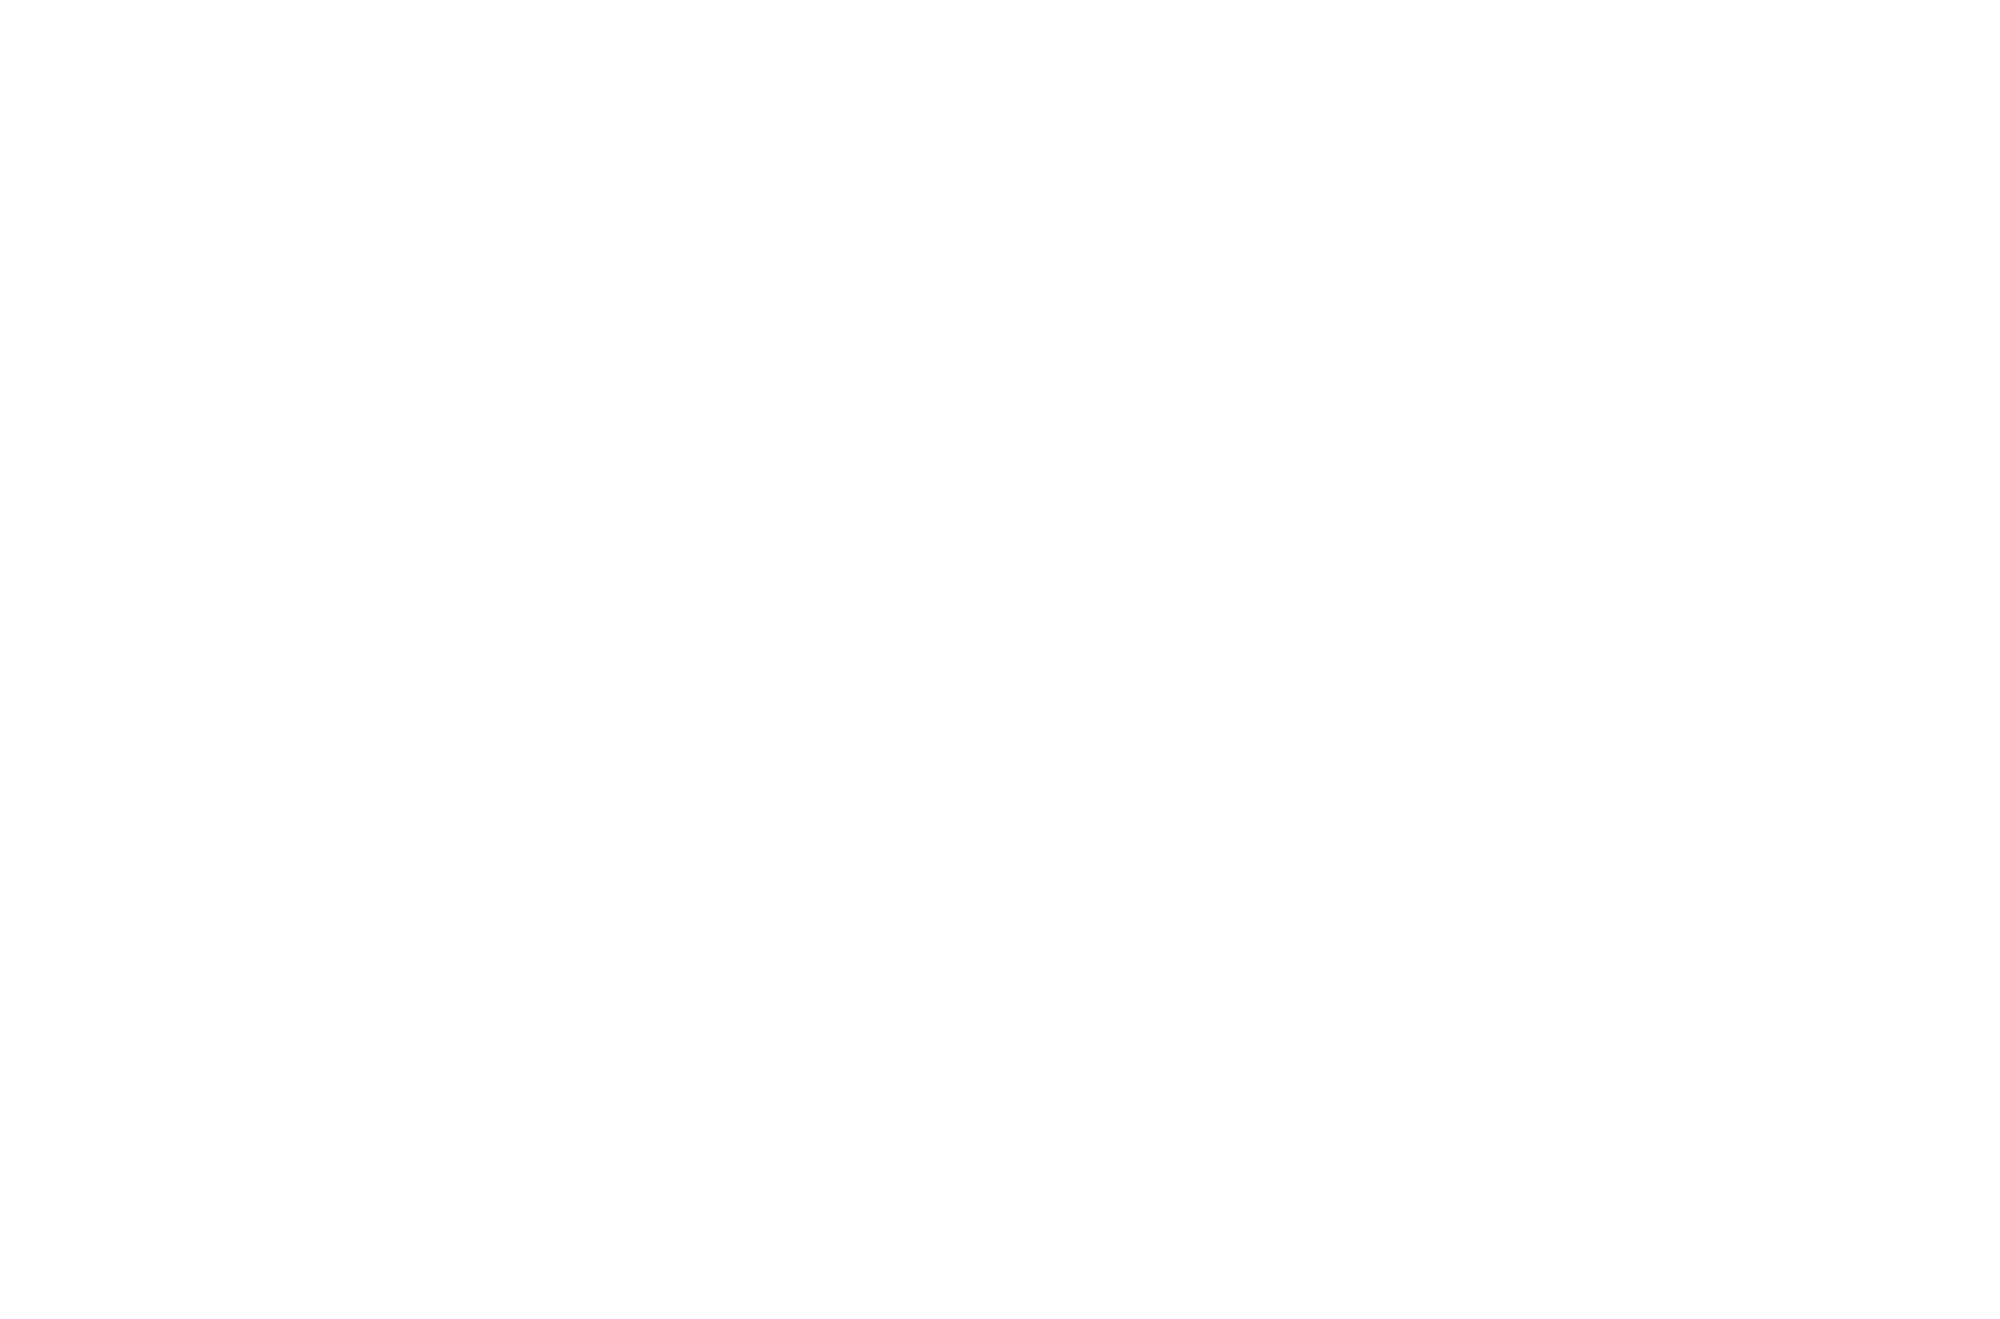 An Ouija board layout, using the Occult Typeface